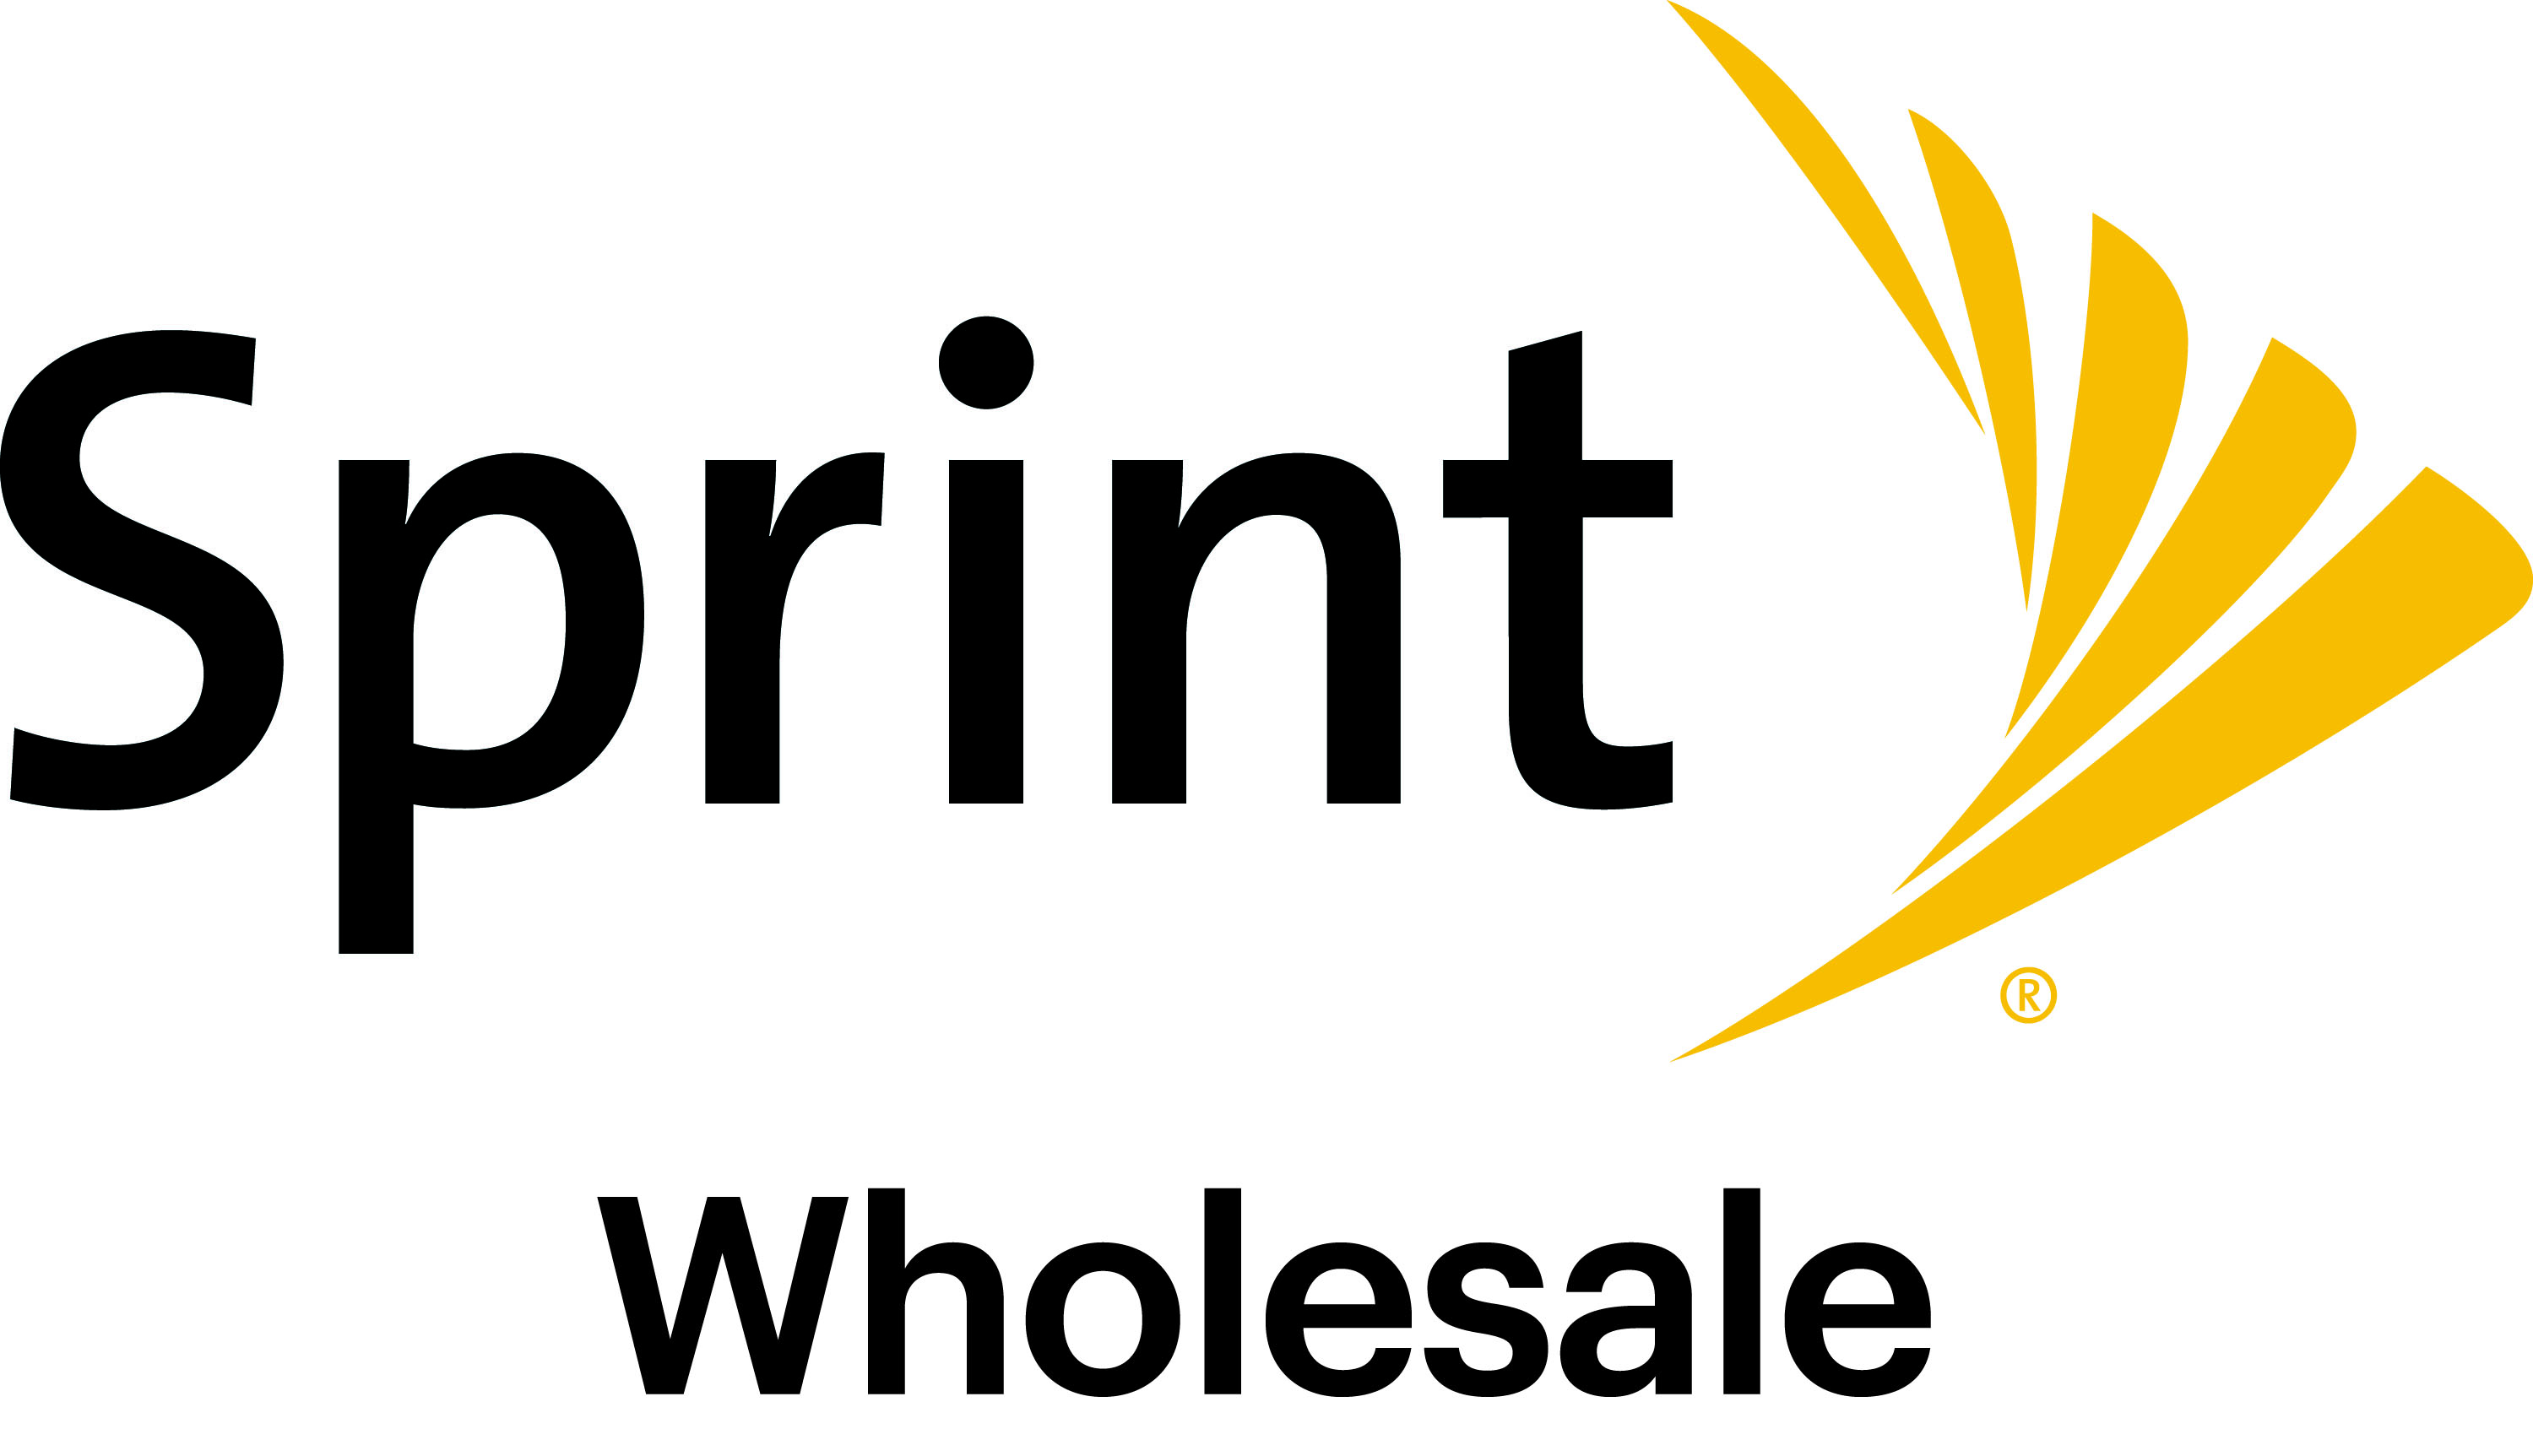 Sprint Wholesale